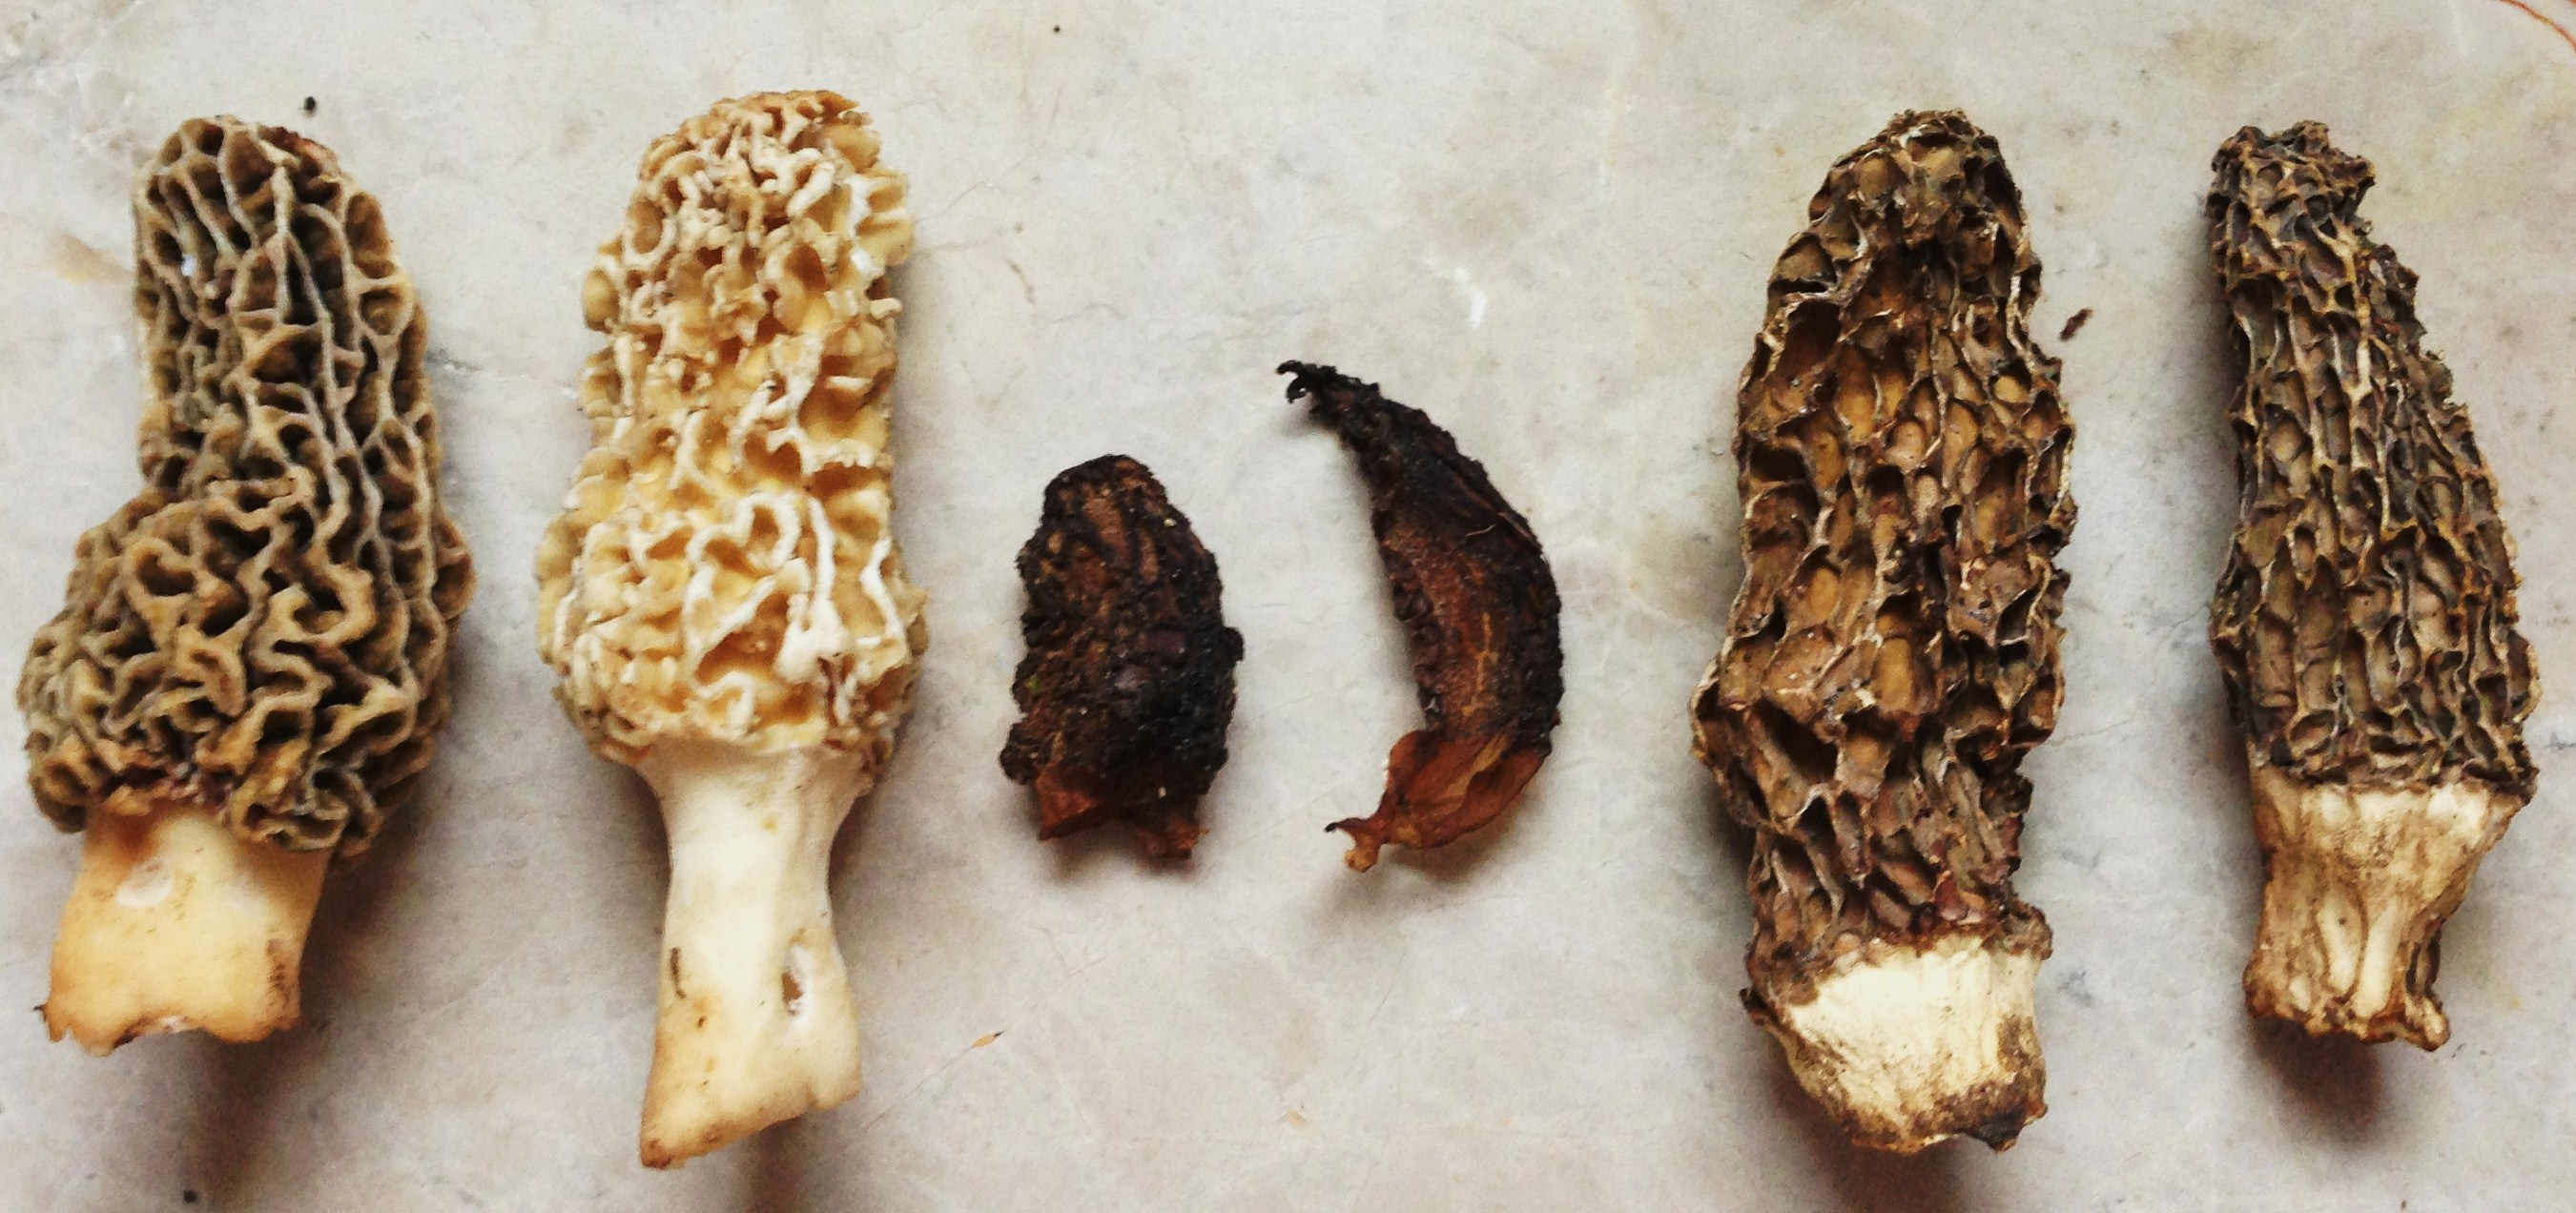 How to Dry or Dehydrate Wild Mushrooms